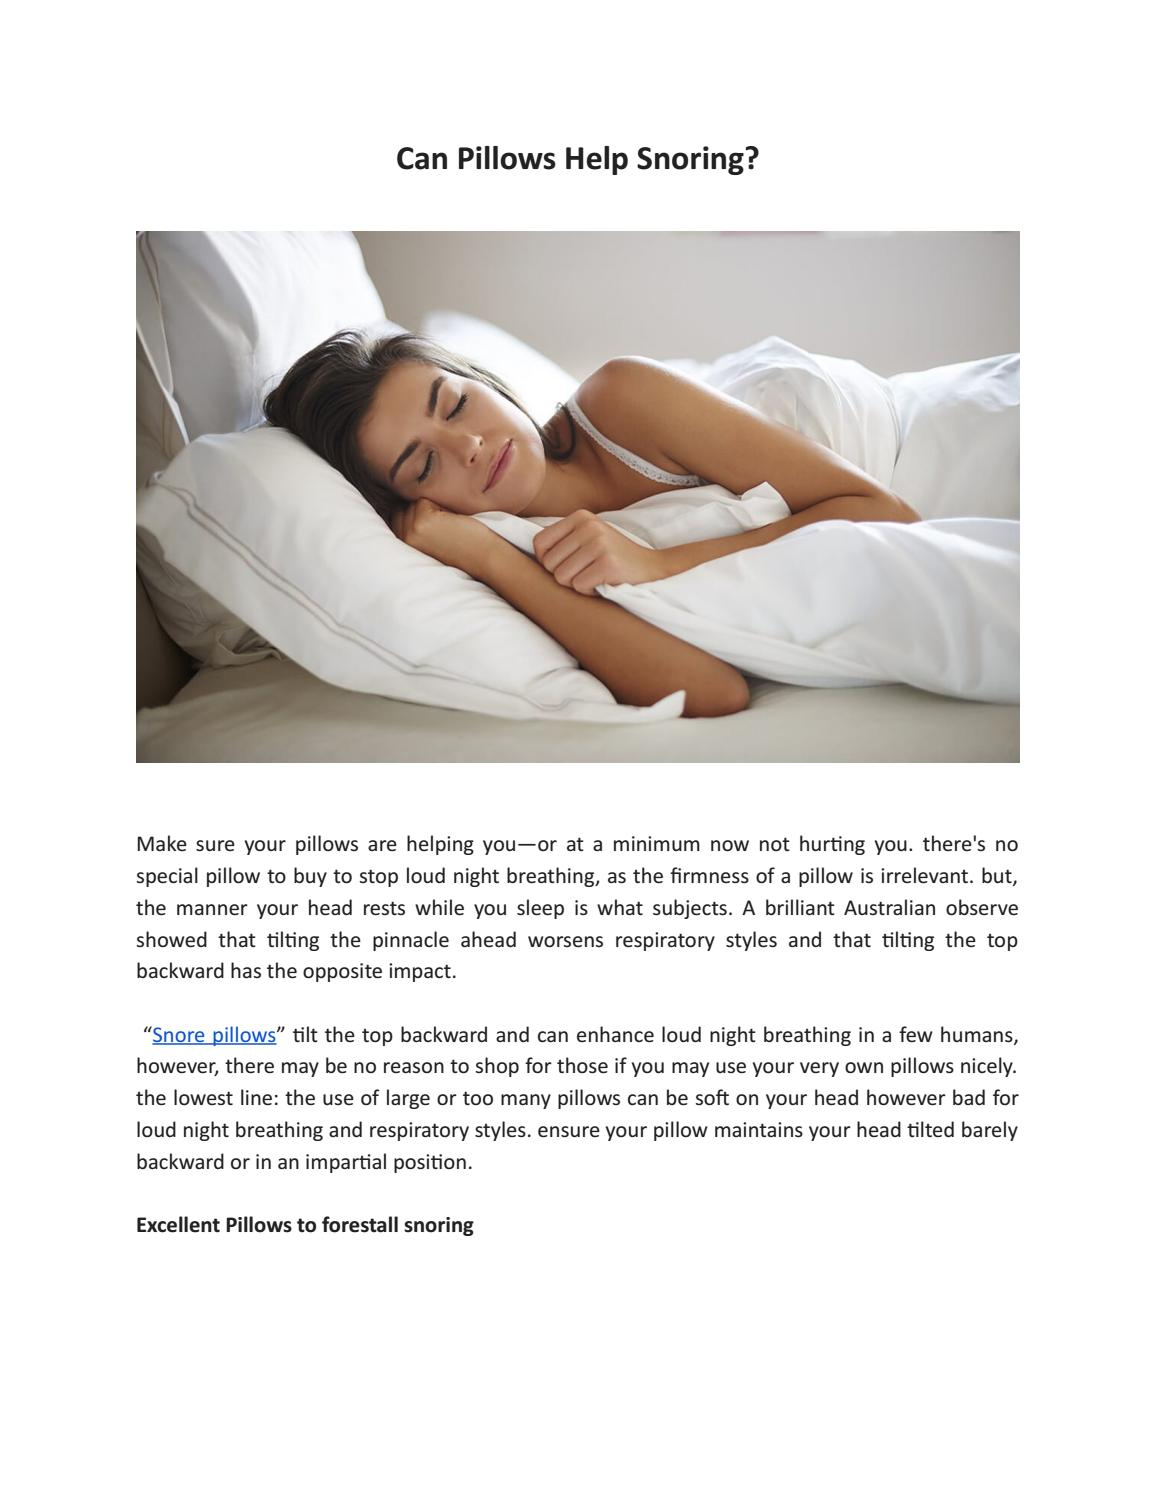 can pillows help snoring by